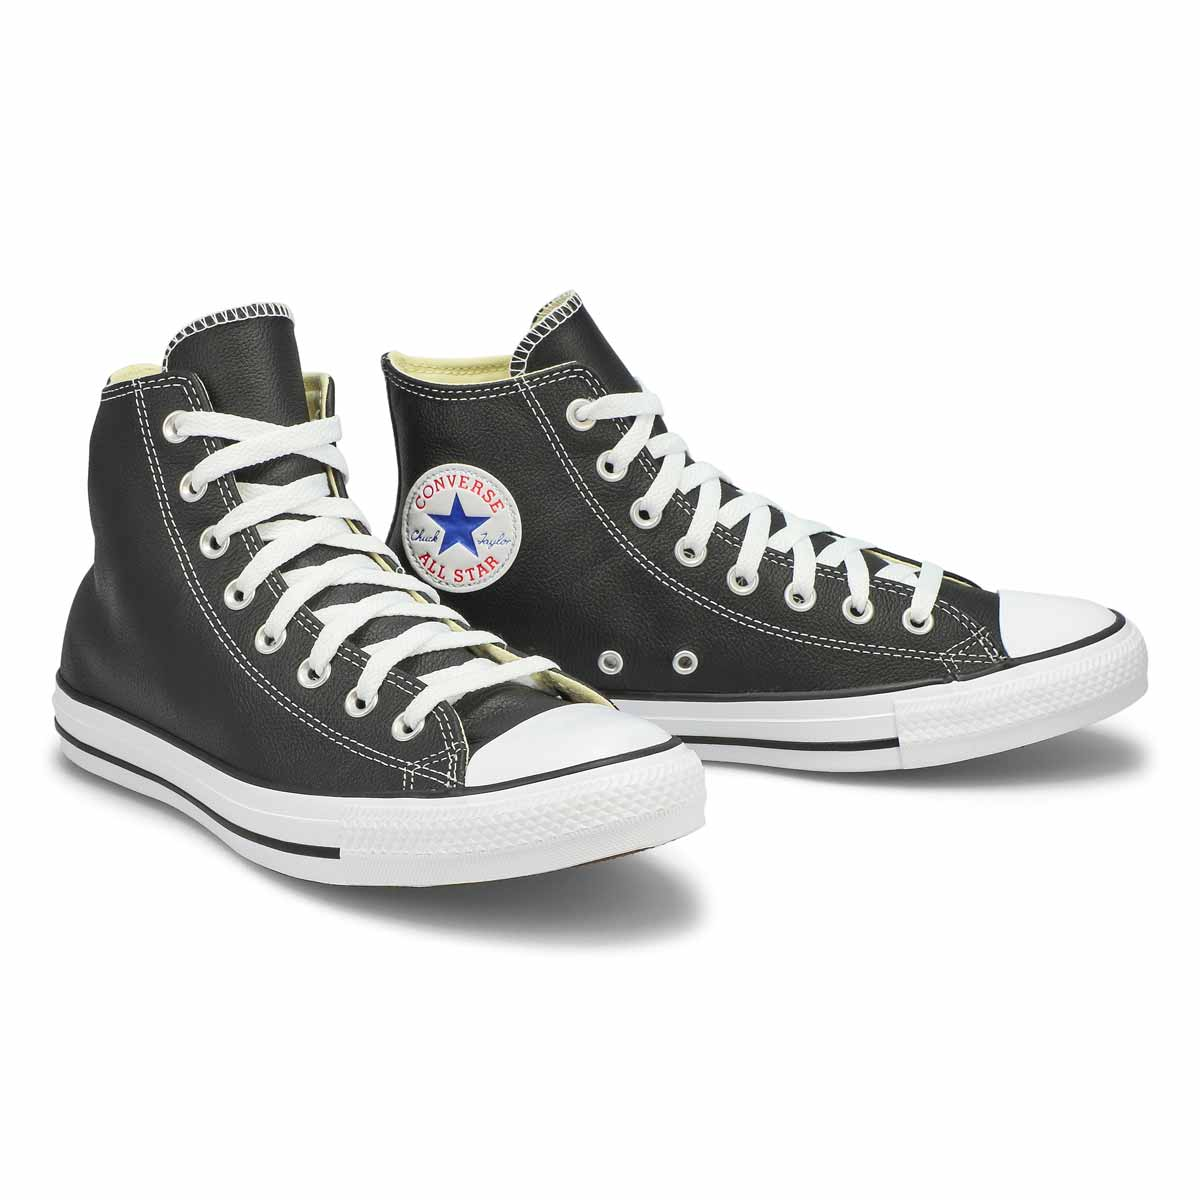 Mns CT All Star Leather black hi sneaker